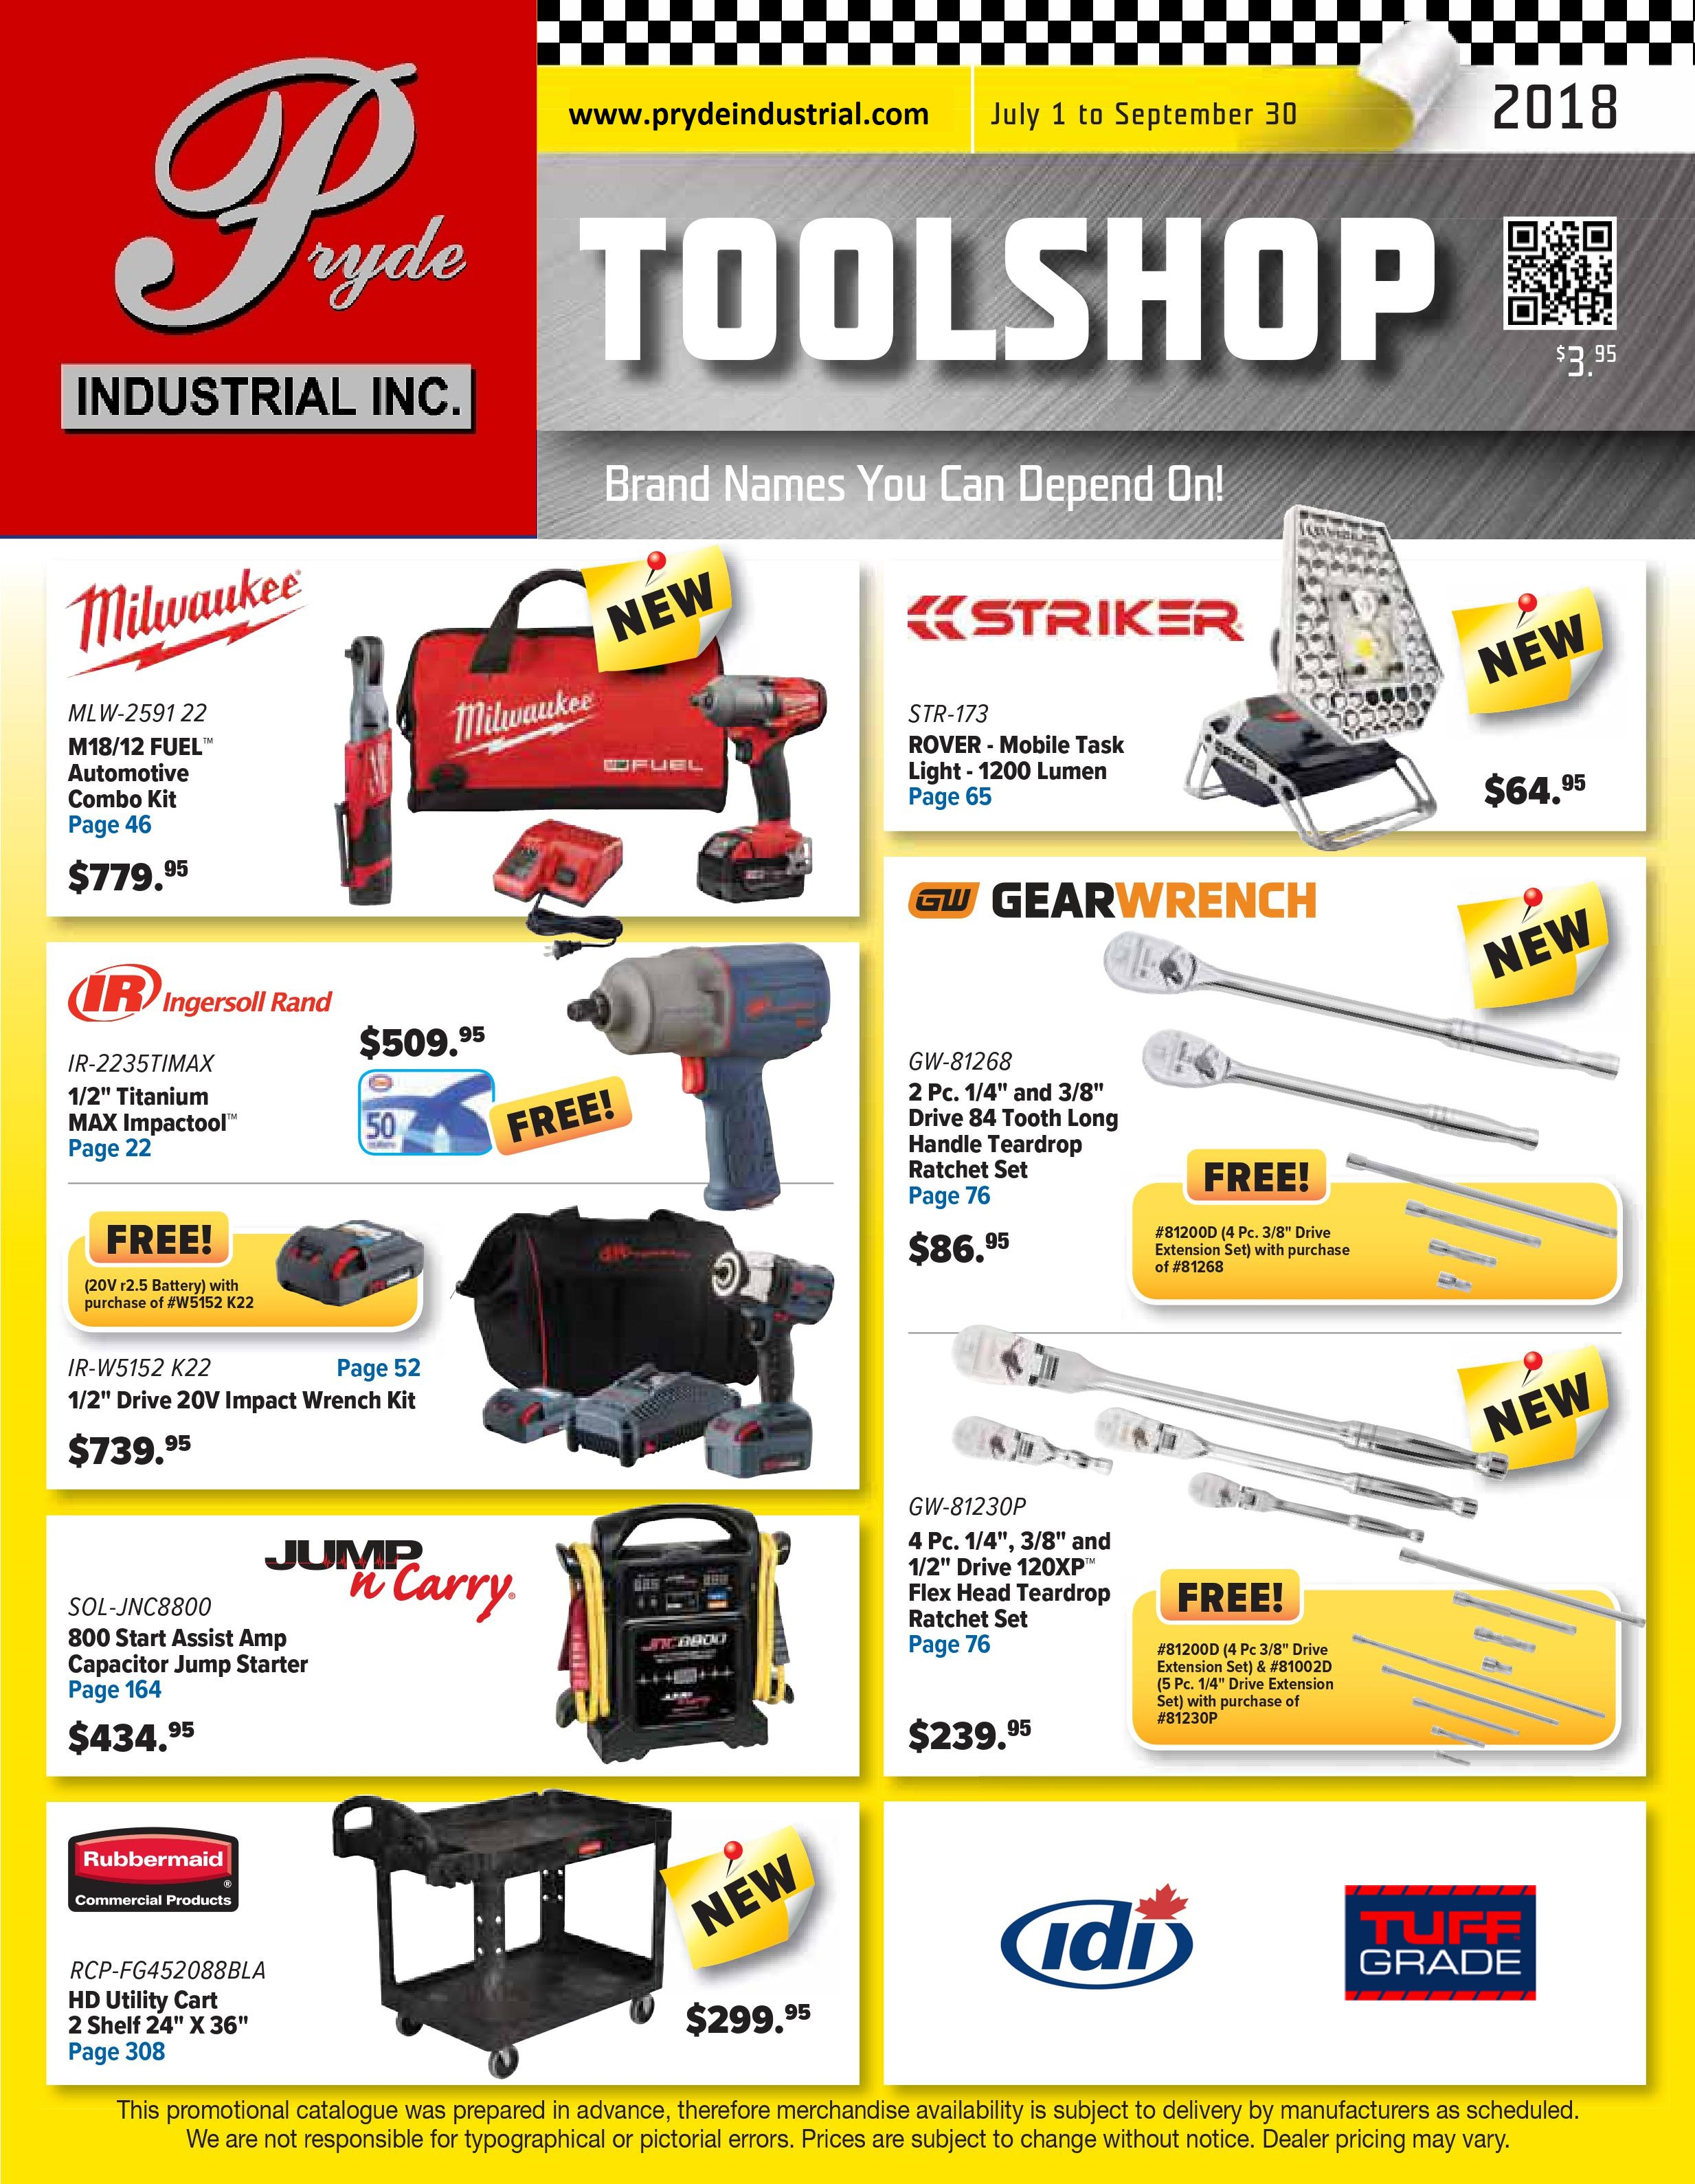 Pryde ToolShop Catalogue Cover